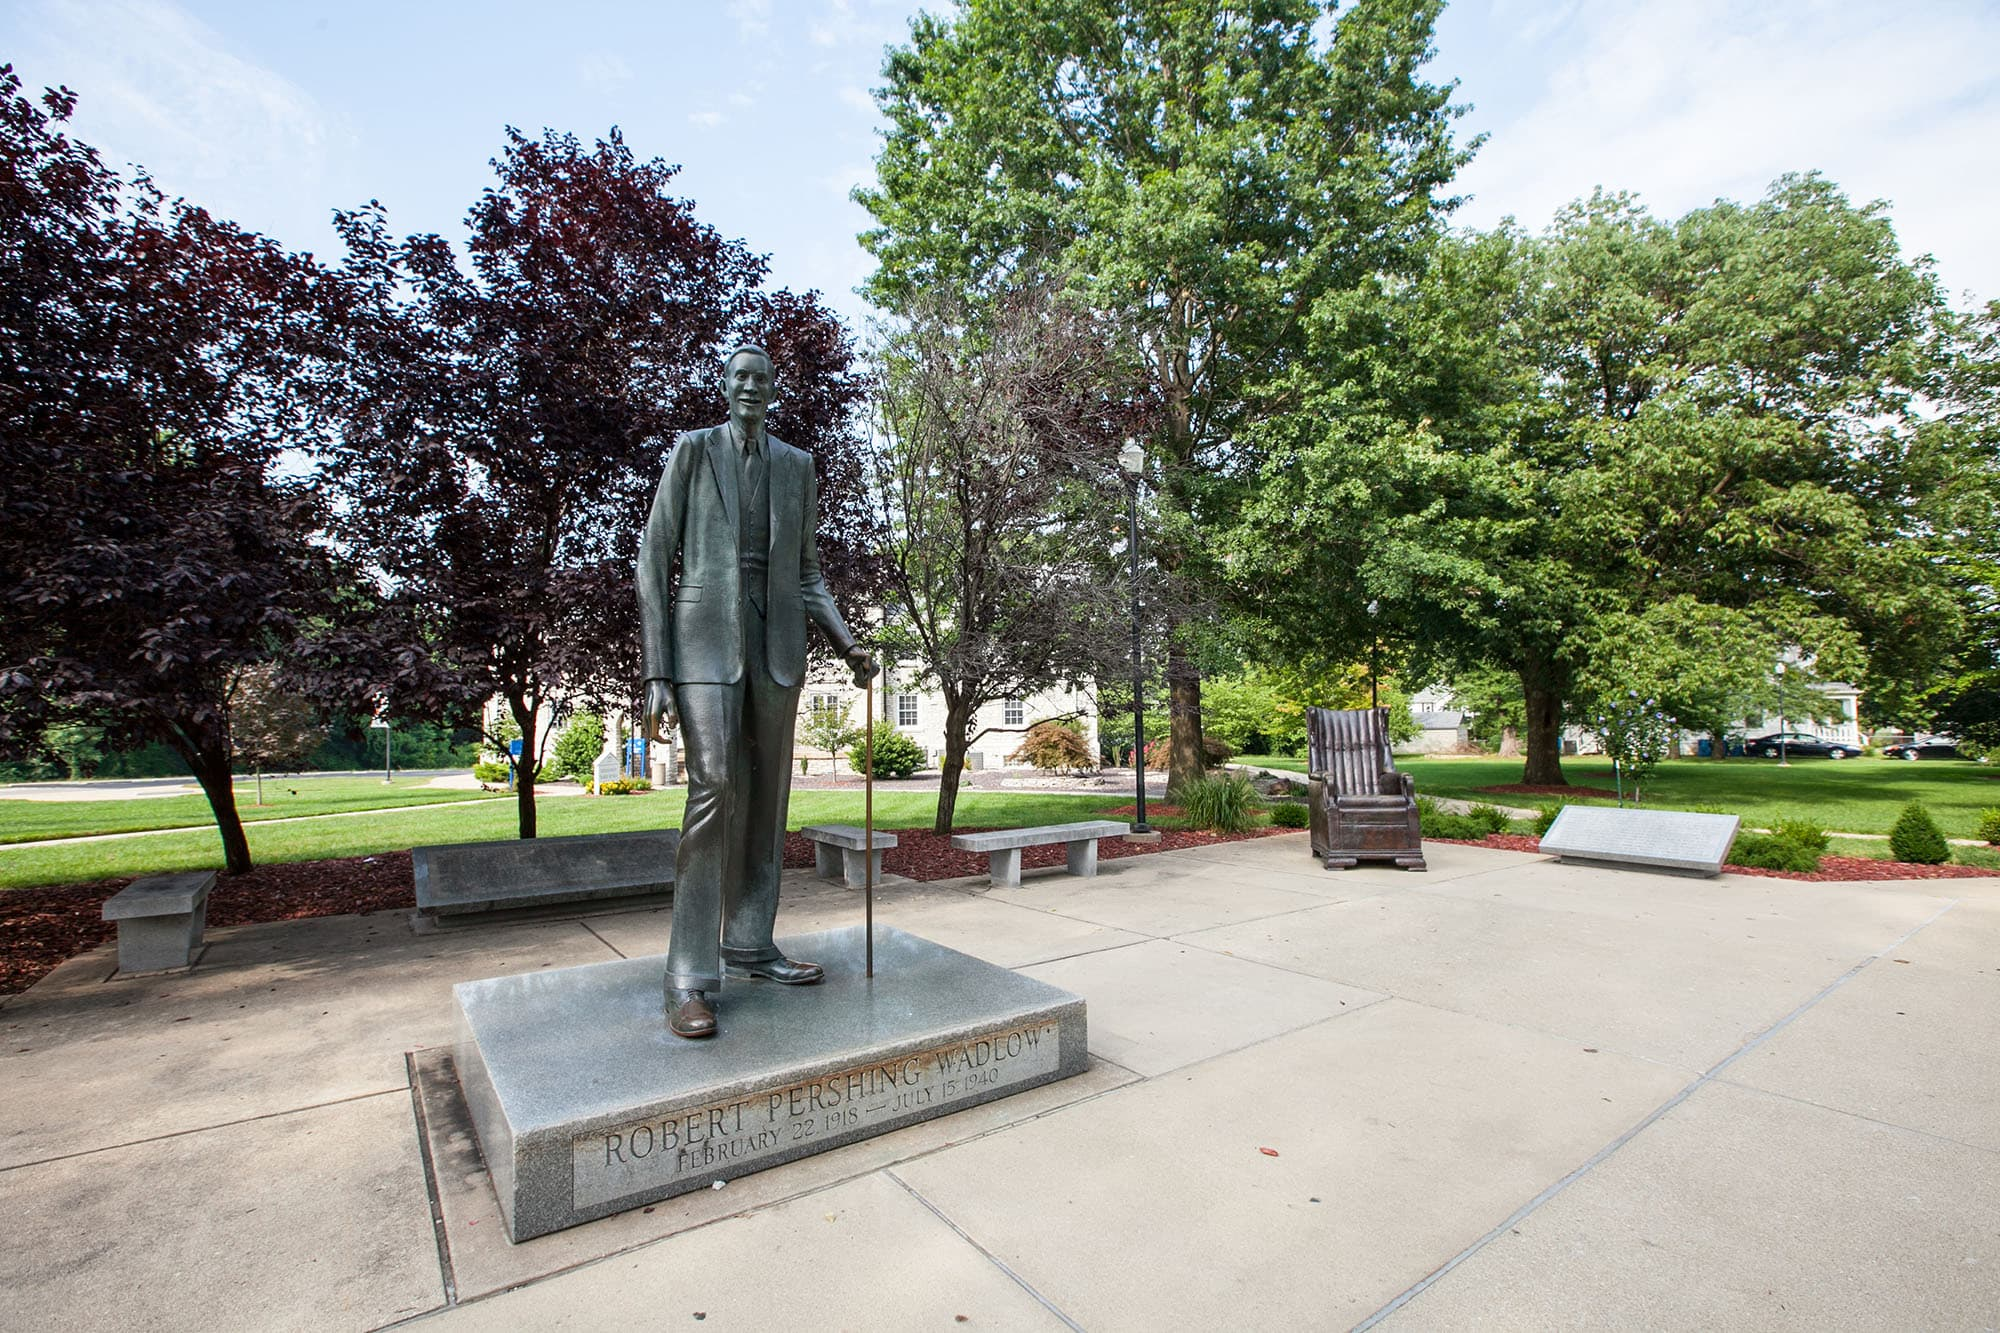 Alton, Illinois - Robert Wadlow